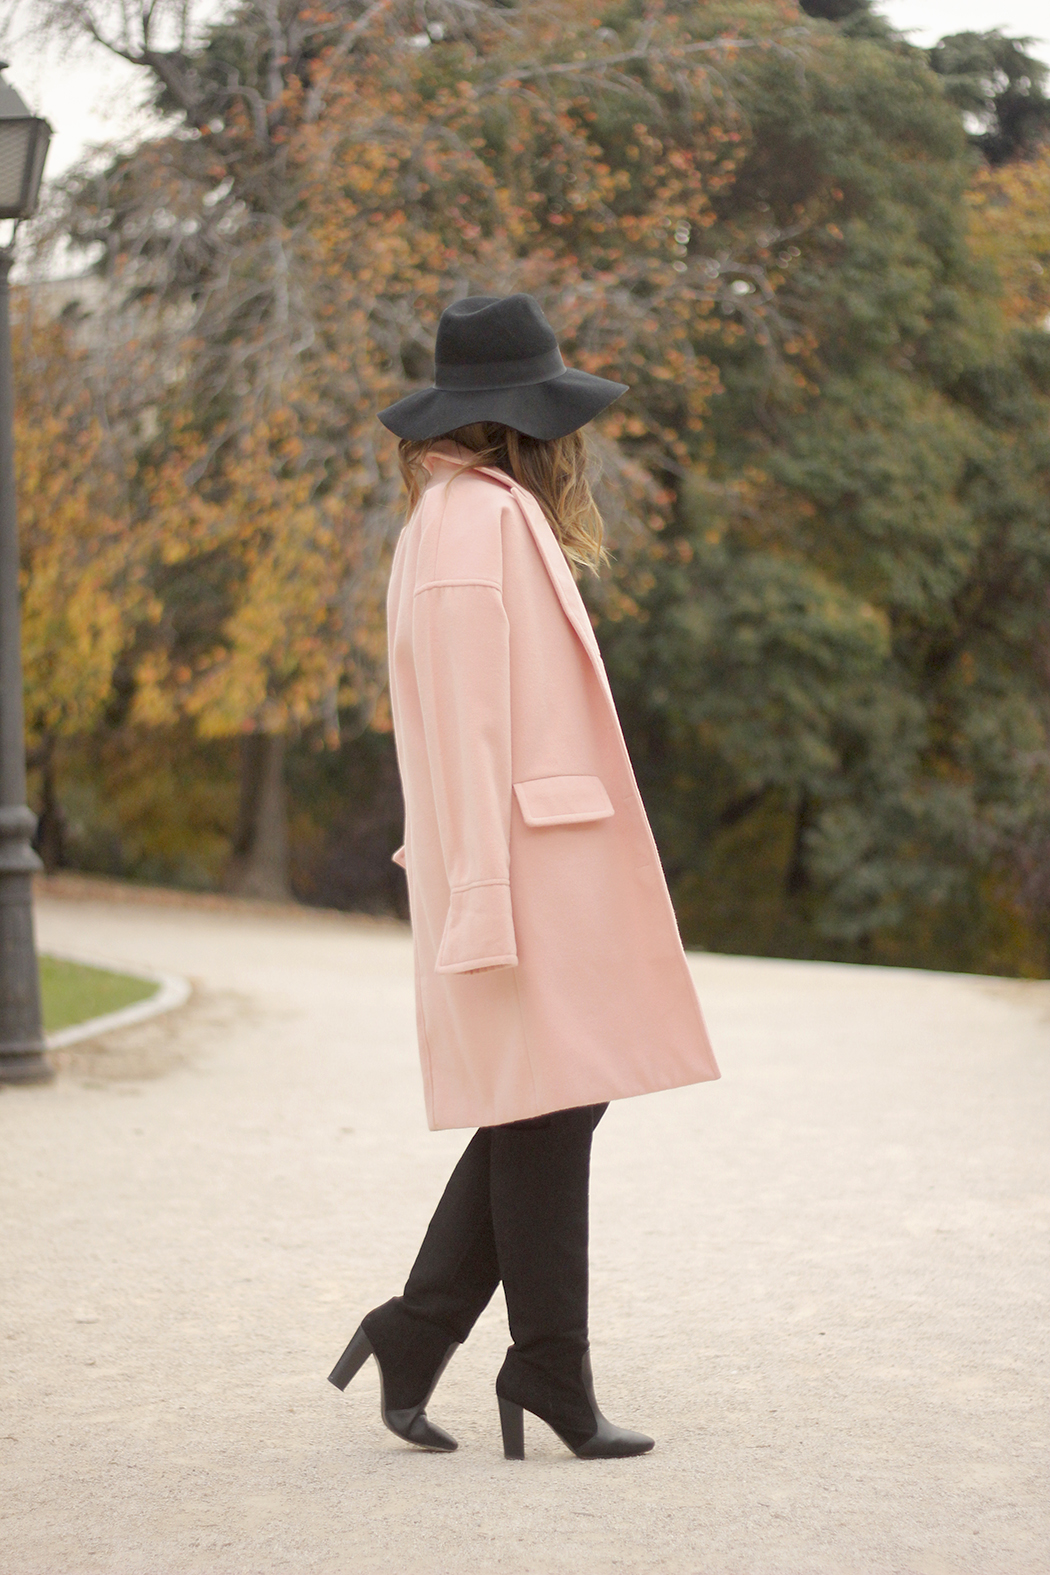 Black and White Dress Pink Coat Black Hat outfit style over the knees boots04